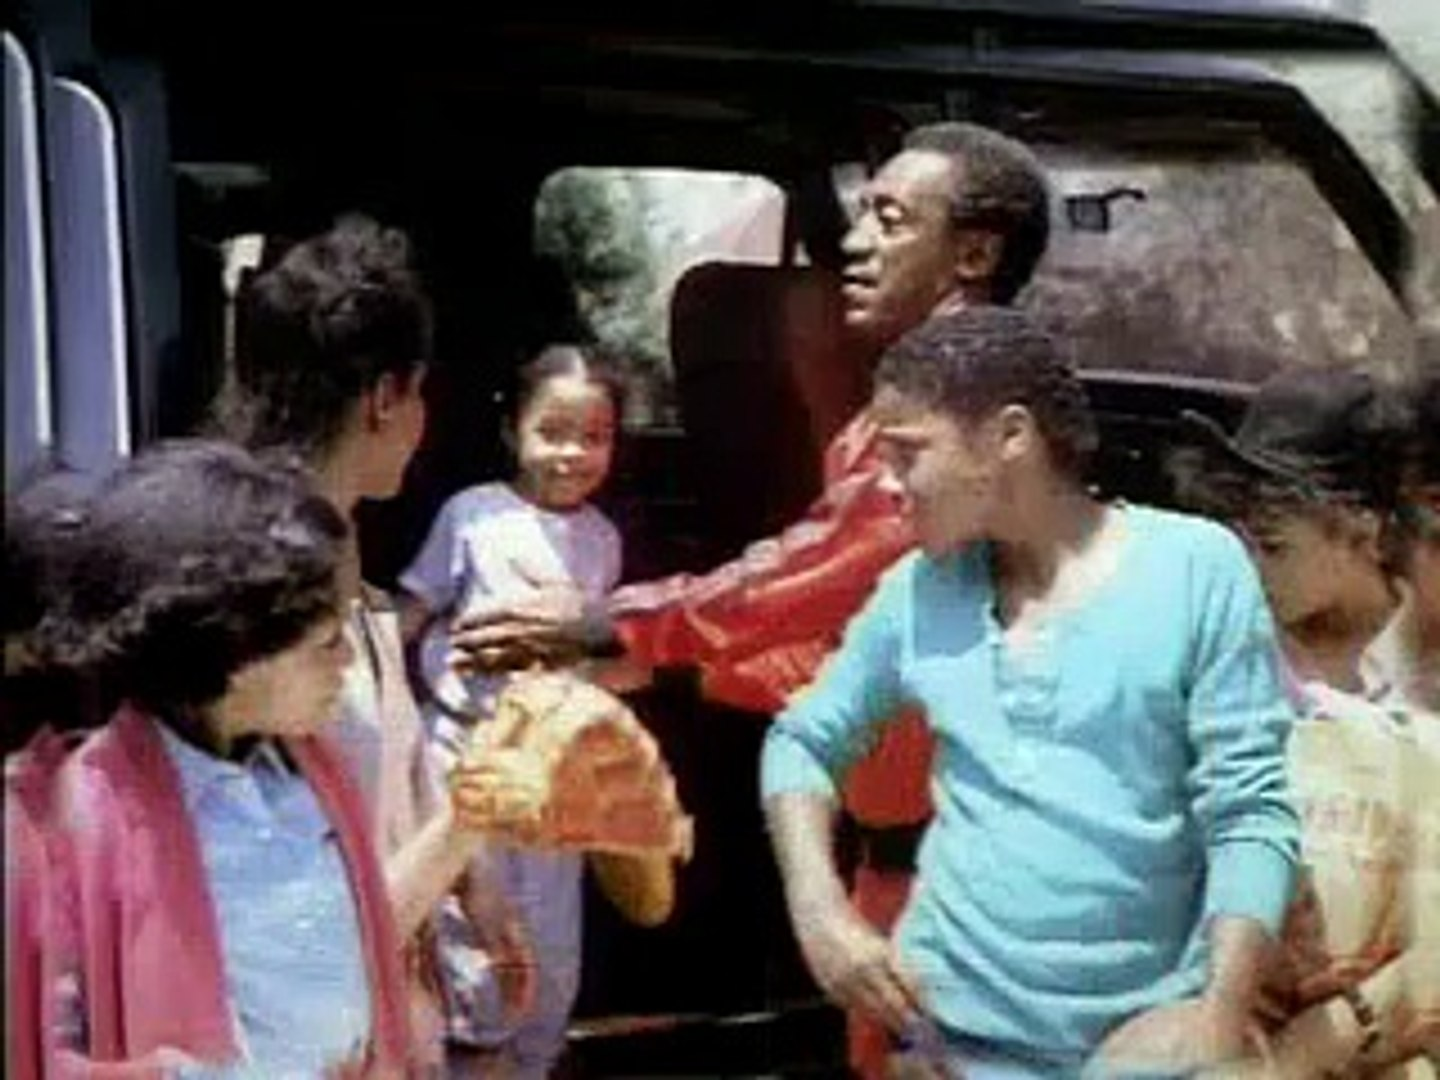 The Cosby Show S01E21 The Younger Woman